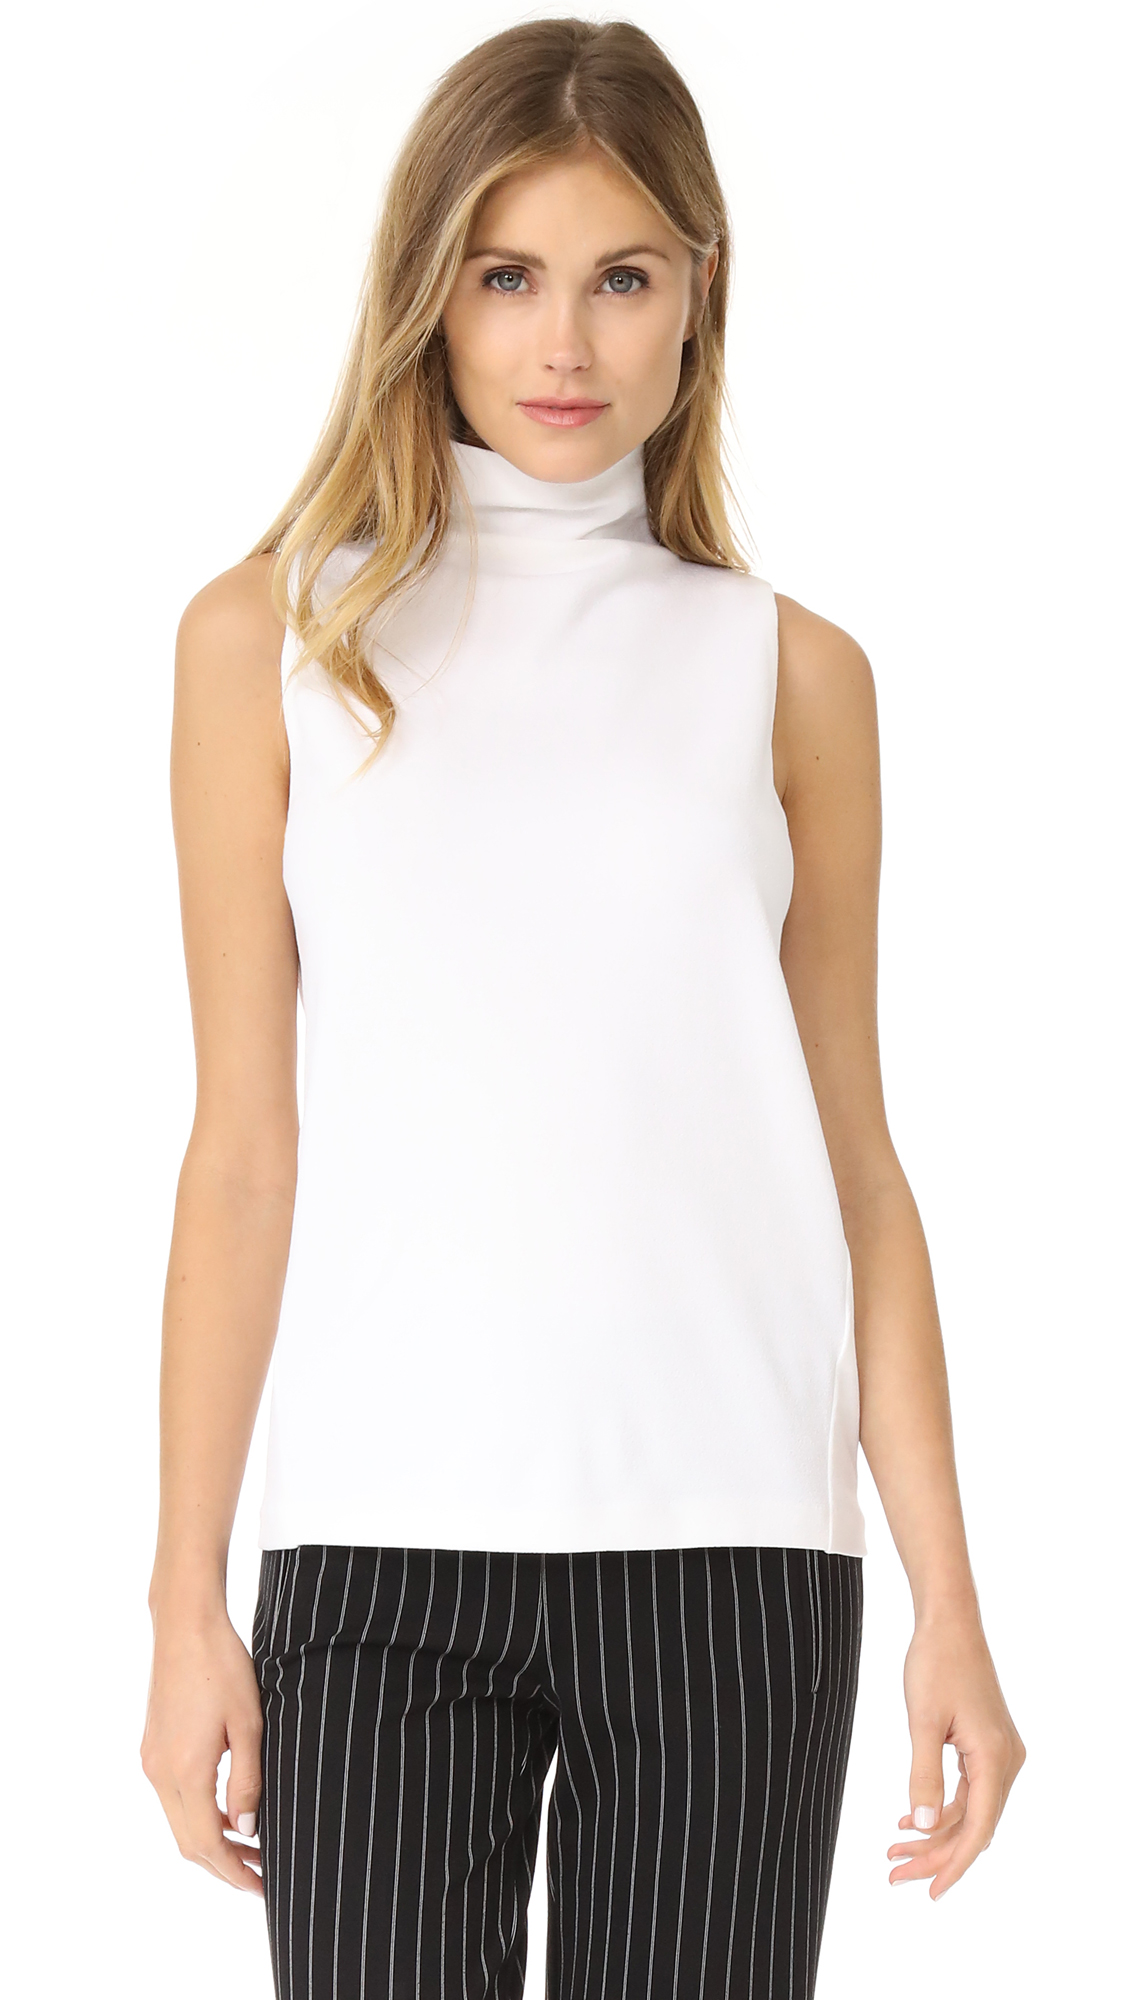 A sleeveless Club Monaco turtleneck top and slanted side seams. Fabric: Mid-weight crepe. 70% viscose/27% nylon/3% elastane. Dry clean. Imported, China. Measurements Length: 24in / 61cm, from shoulder Measurements from size S